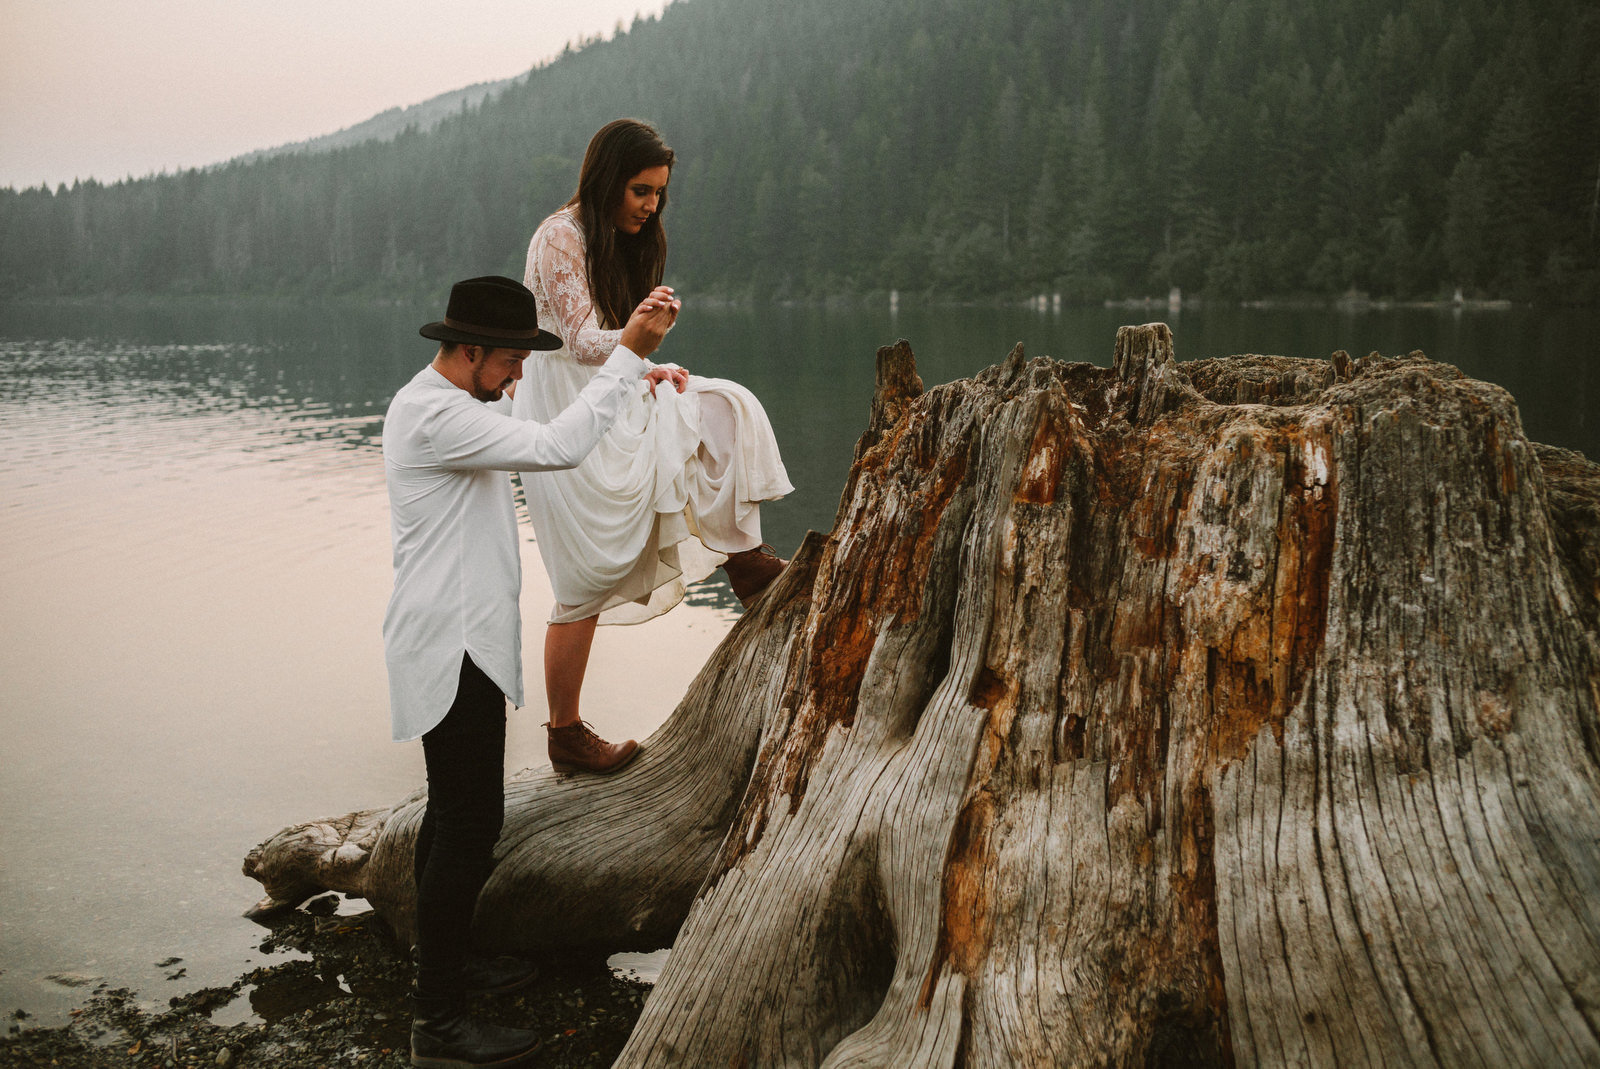 athena-and-camron-seattle-elopement-wedding-benj-haisch-rattlesnake-lake-christian-couple-goals85